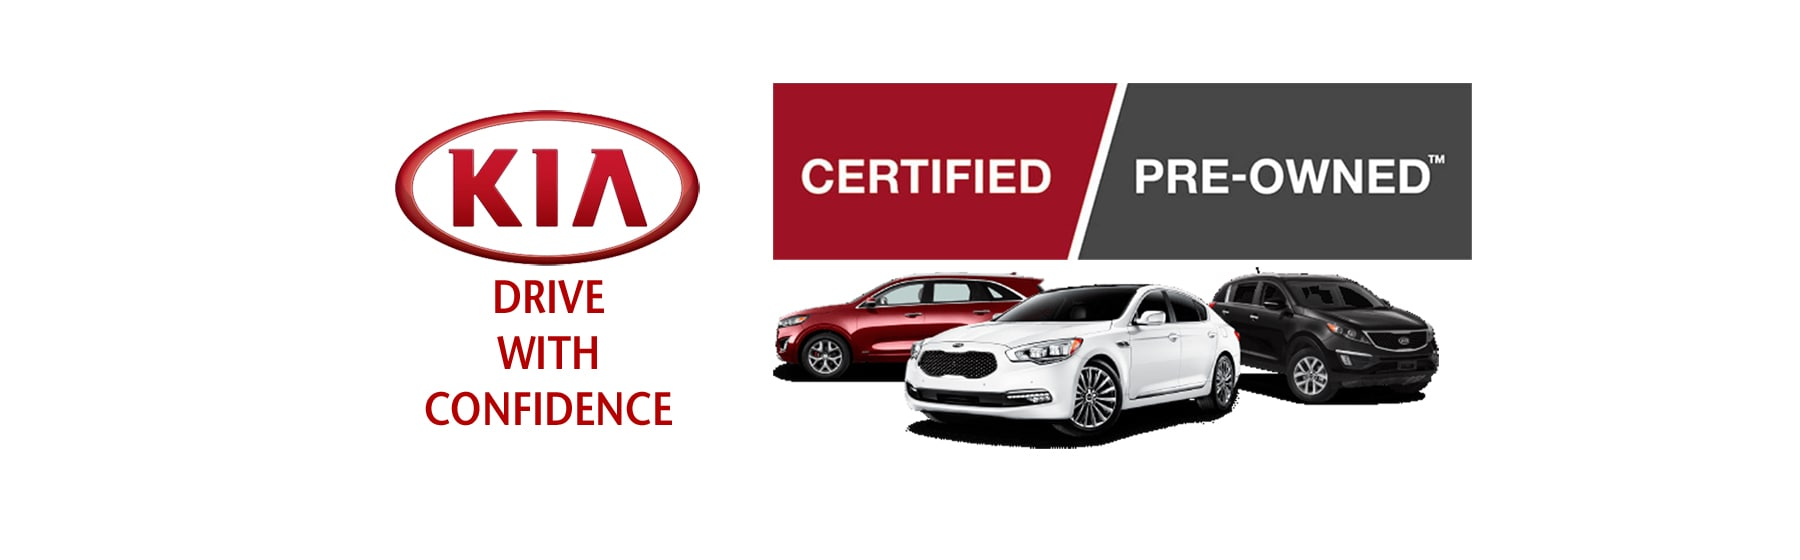 Eastern Shore Kia Herb Chambers Kia Of Burlington Ma Buy Or Lease A New Kia